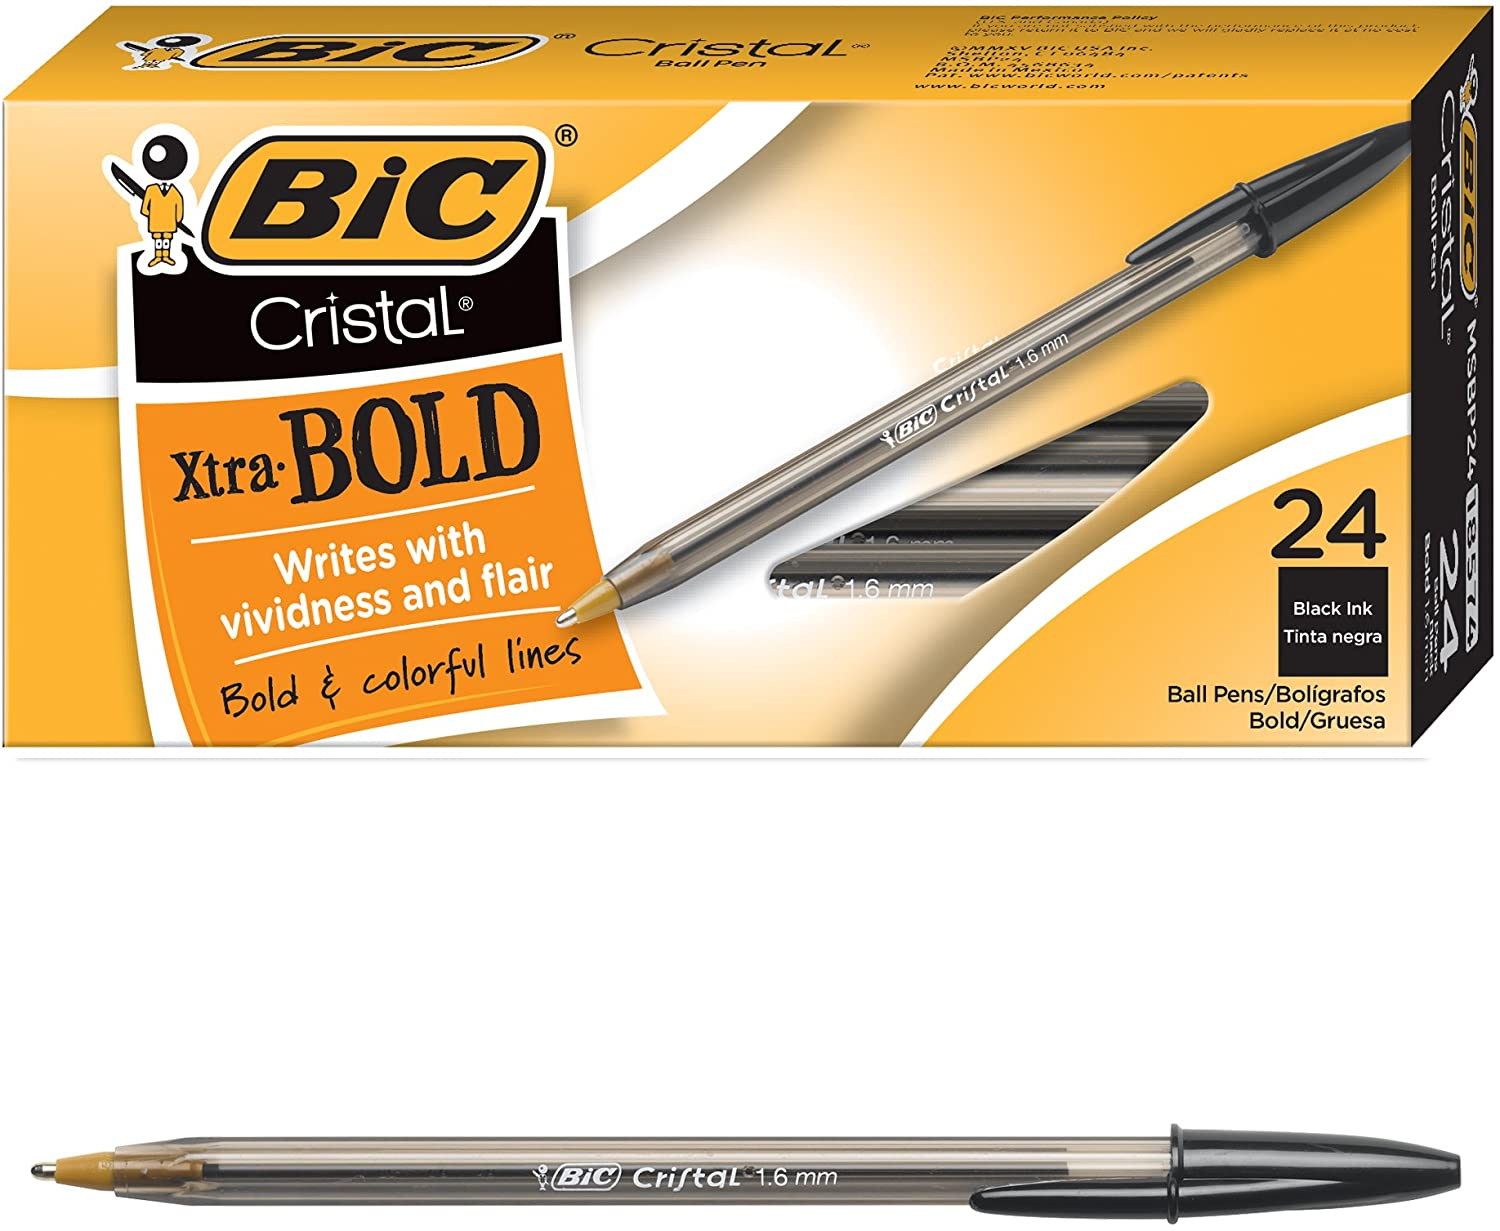 BIC Cristal Xtra Bold Ballpoint Pen Bold Point 1.6mm Black 24 Count